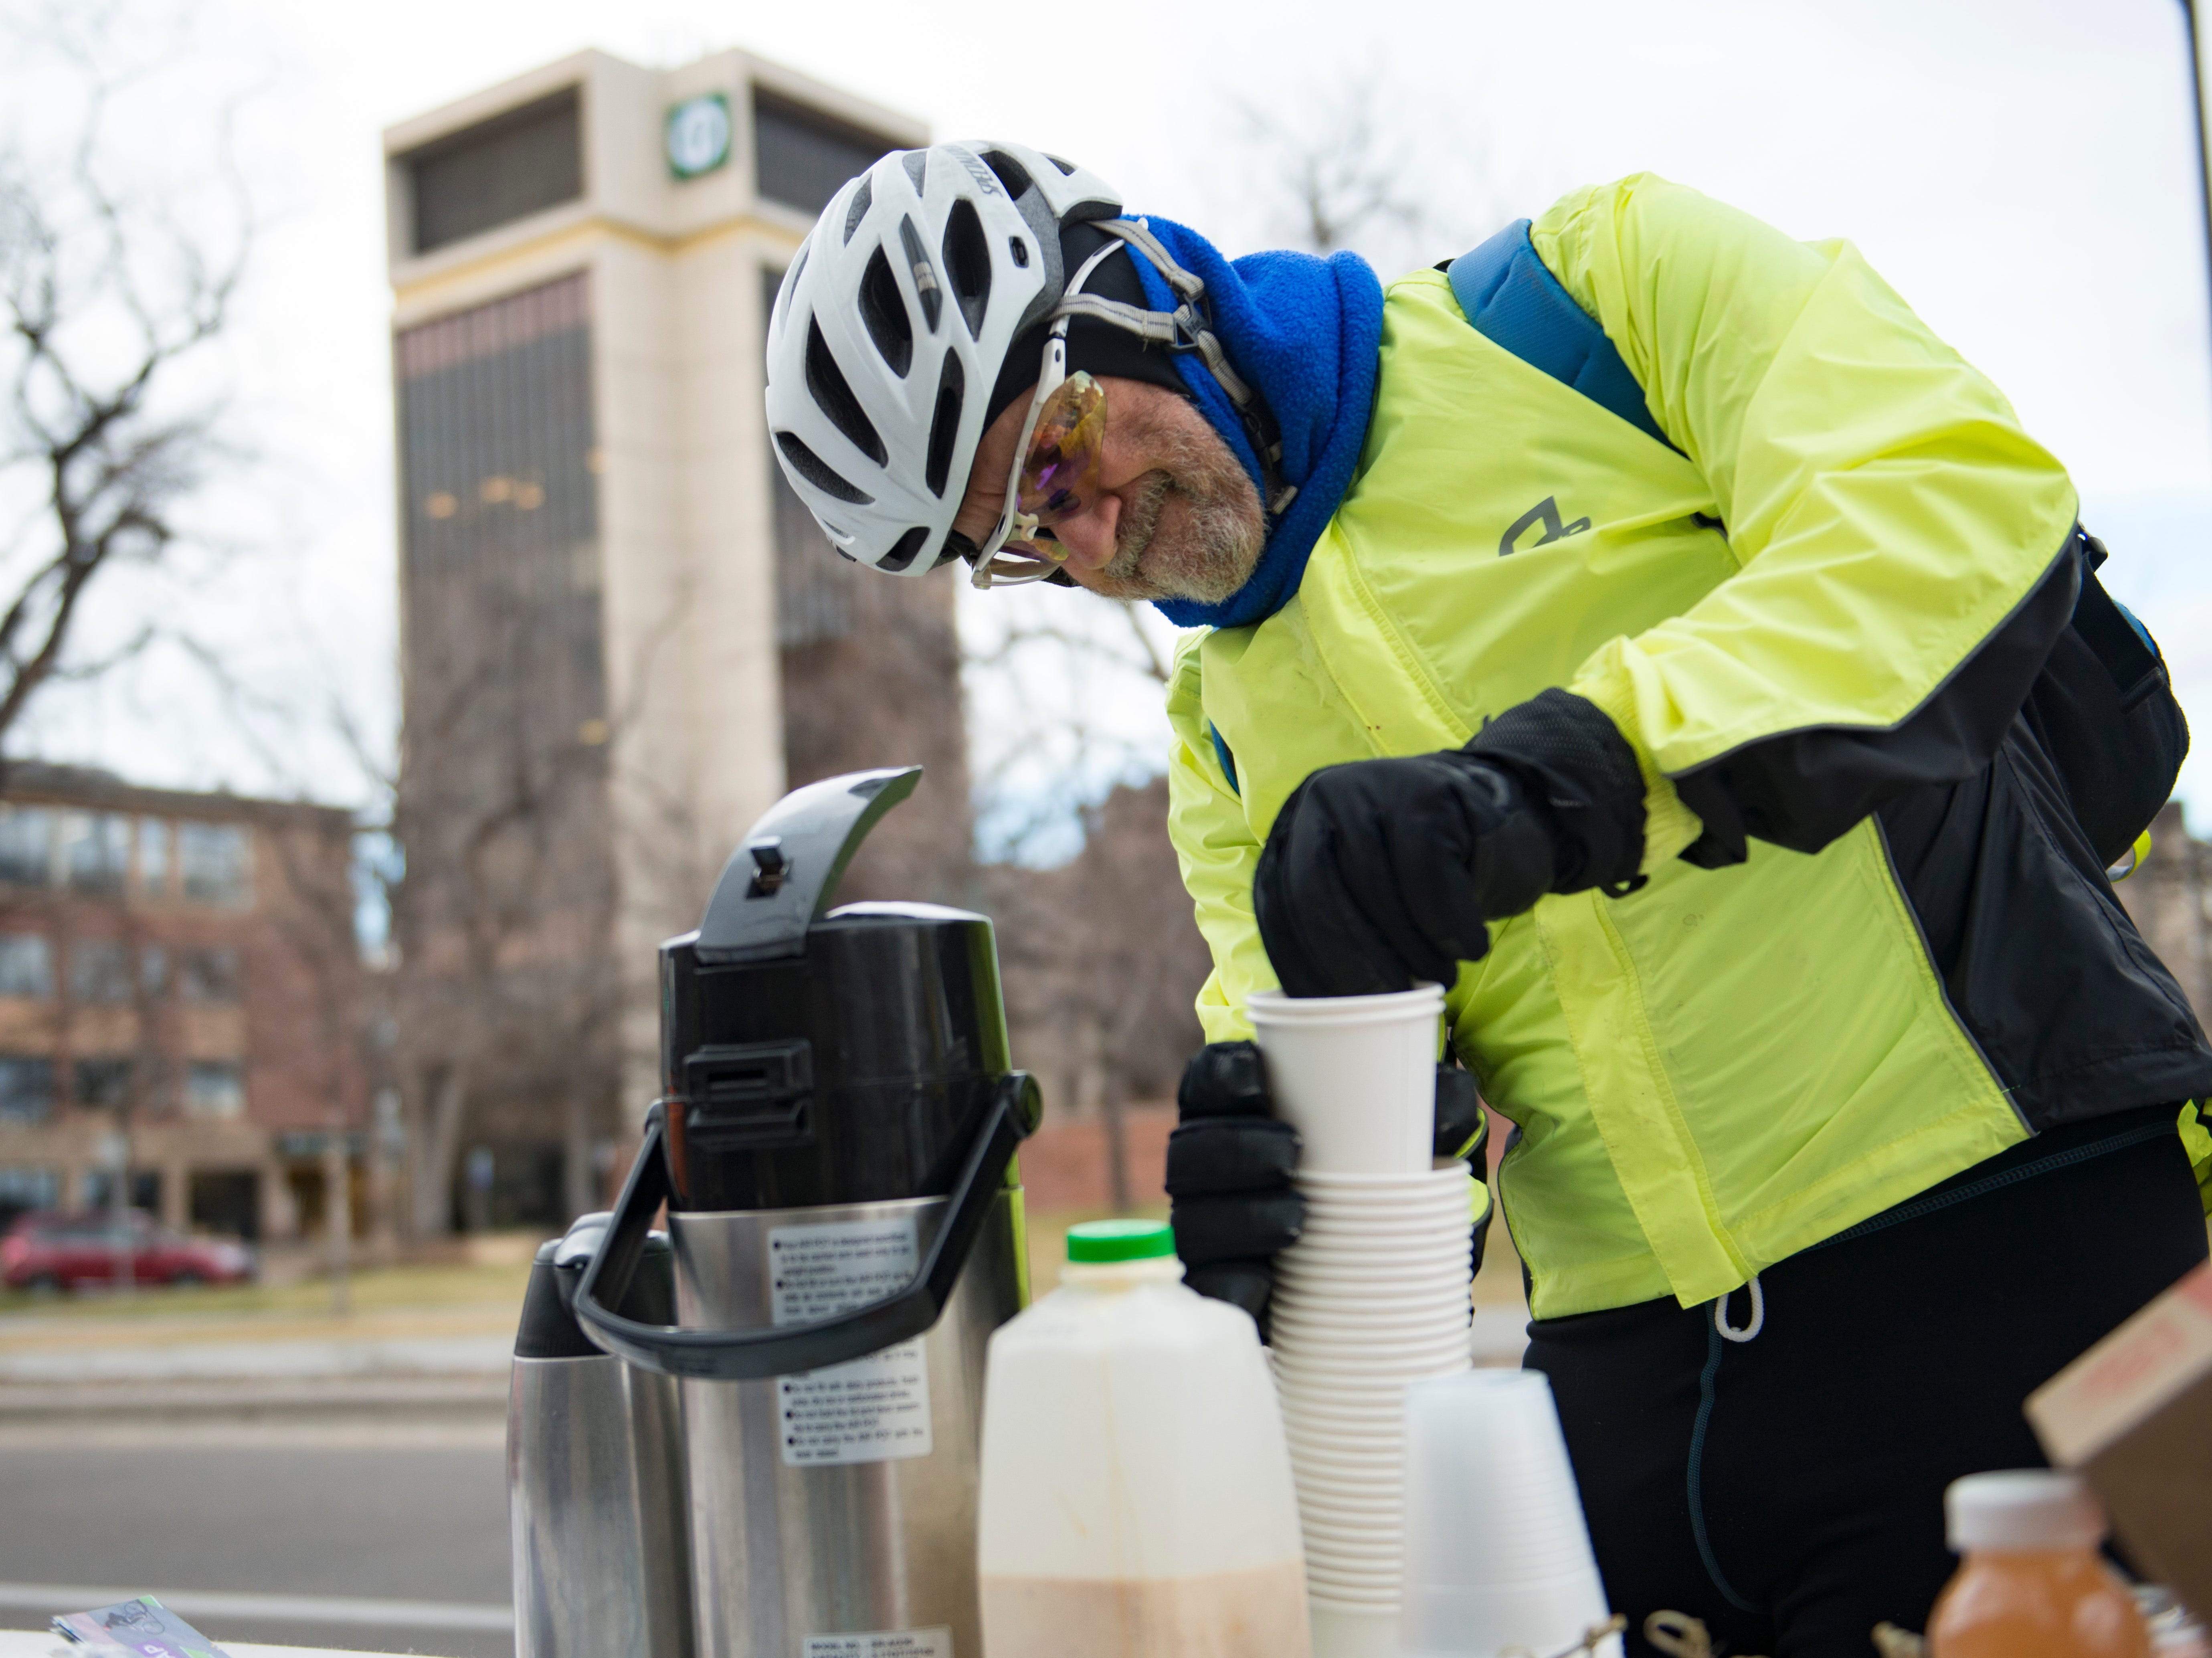 Lee Marchand gets a cup of coffee at Everyday Joe's Coffee House during Winter Bike to Work Day on Wednesday, December 12, 2018. Commuters were treated to free breakfast and coffee at nearly 50 stations around Fort Collins.